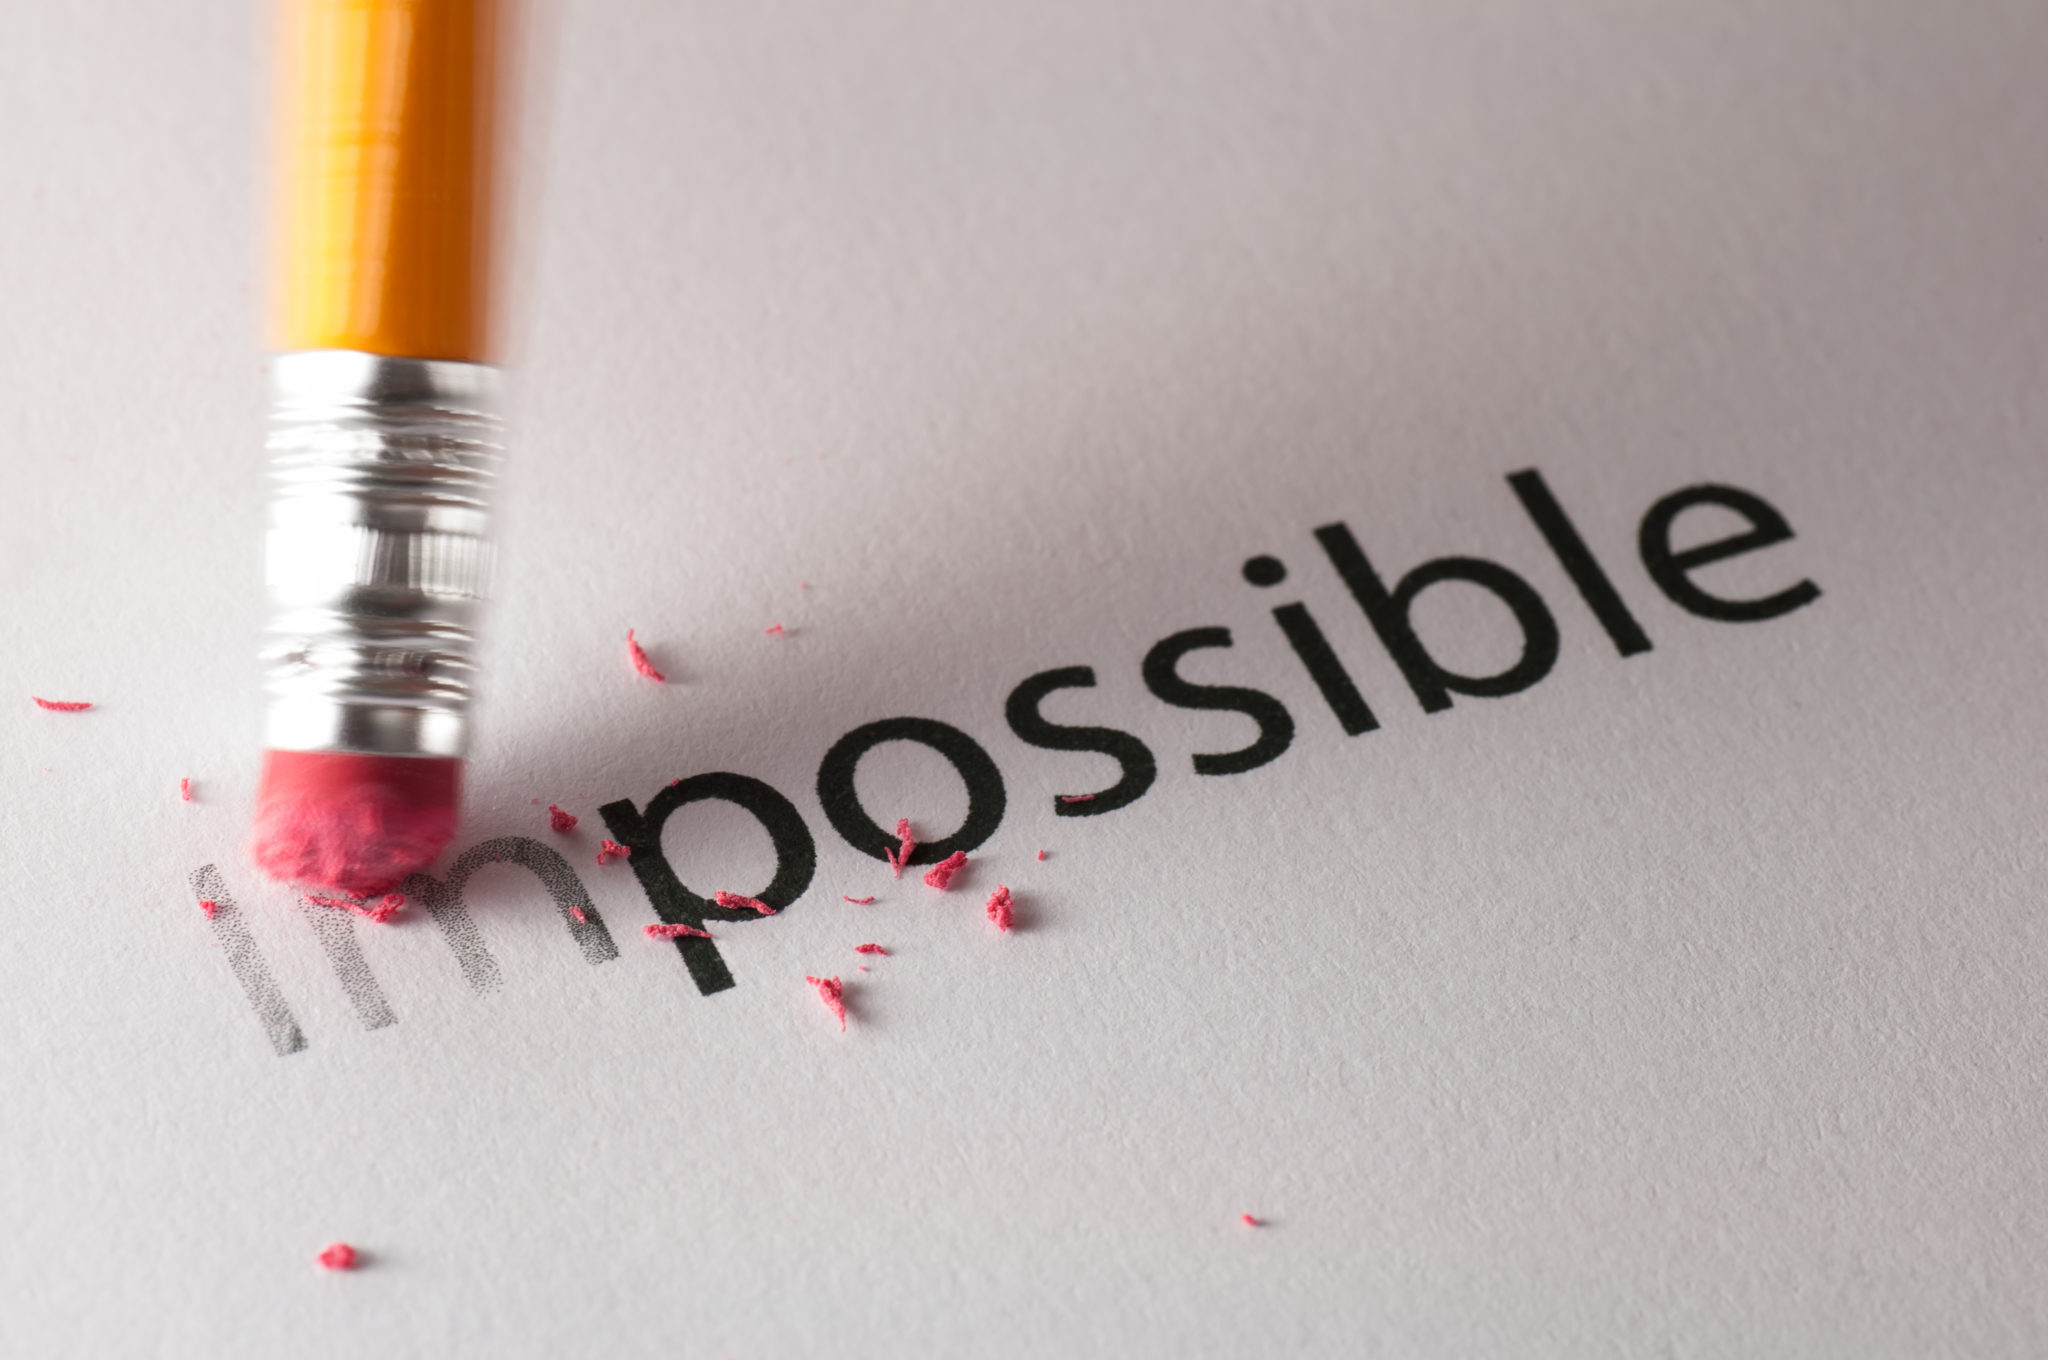 The word impossible with an eraser changing the word to possible